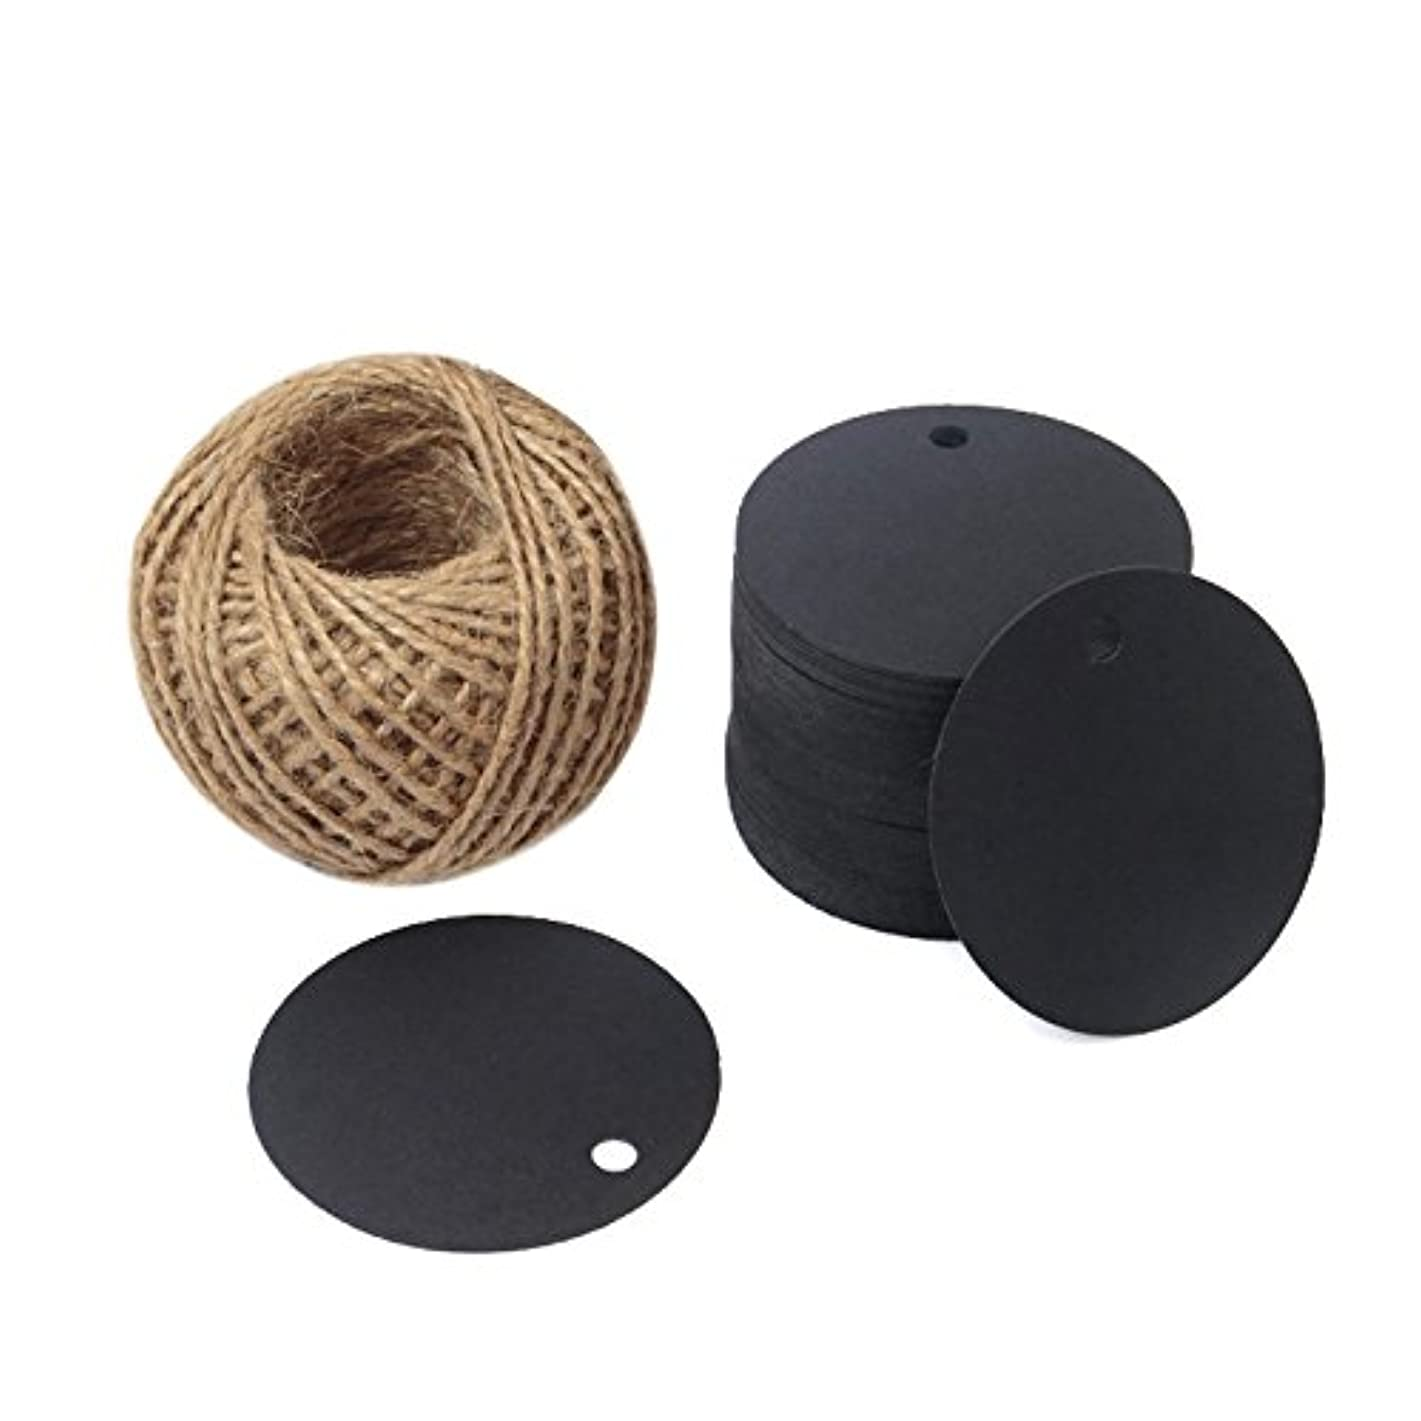 Kraft Paper Round Gift Tags,Gift Wrap Tags with String,Blank Hang Gift Tag,KINGLAKE 100 Pcs 5.5cm Wedding Craft Tags with 100 Feet Natural Jute Twine (Black)